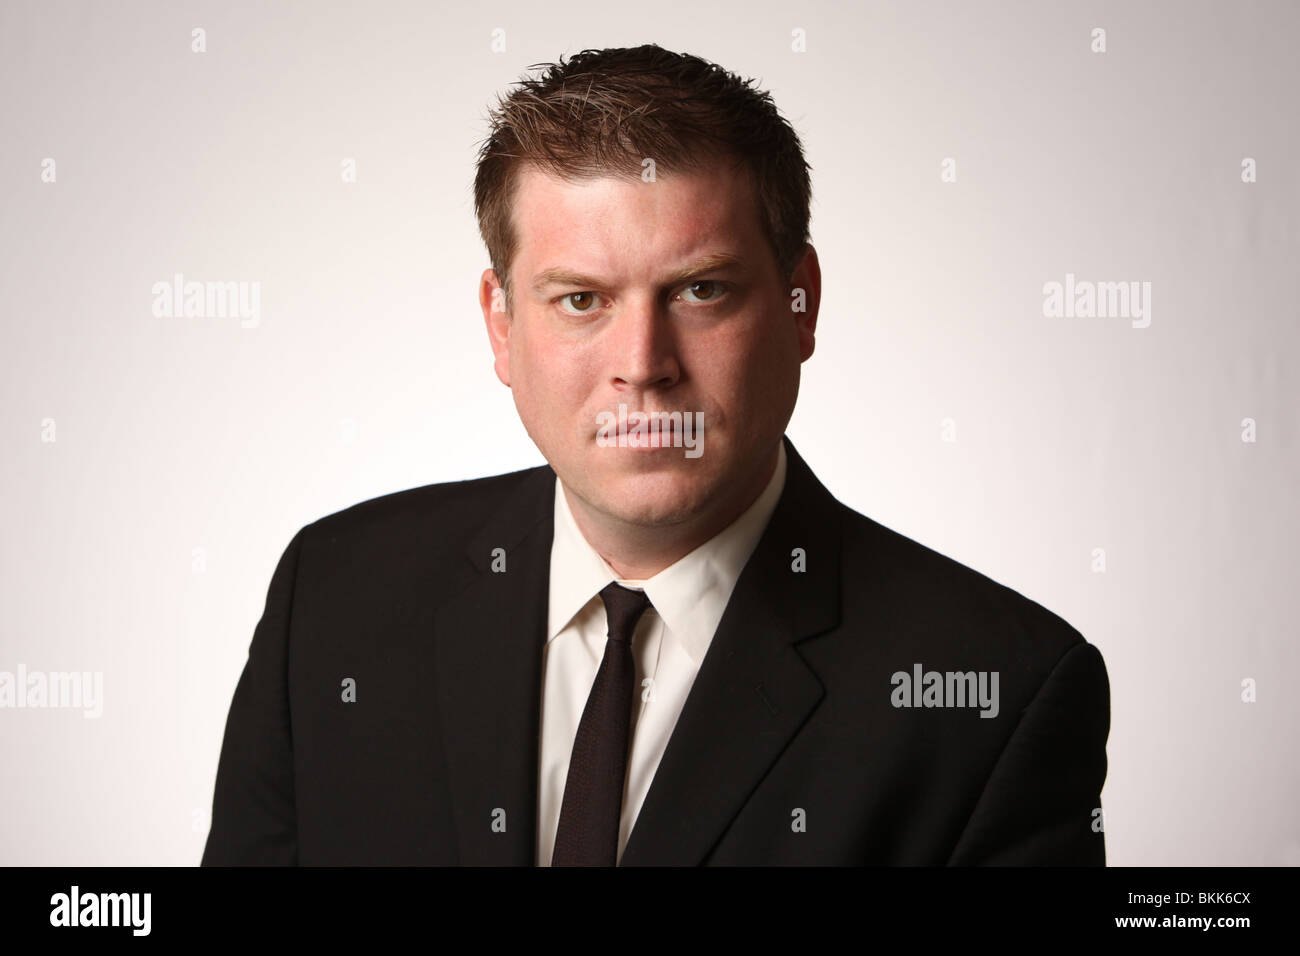 Serious business man wearing black suit and tie.  © Katharine Andriotis - Stock Image